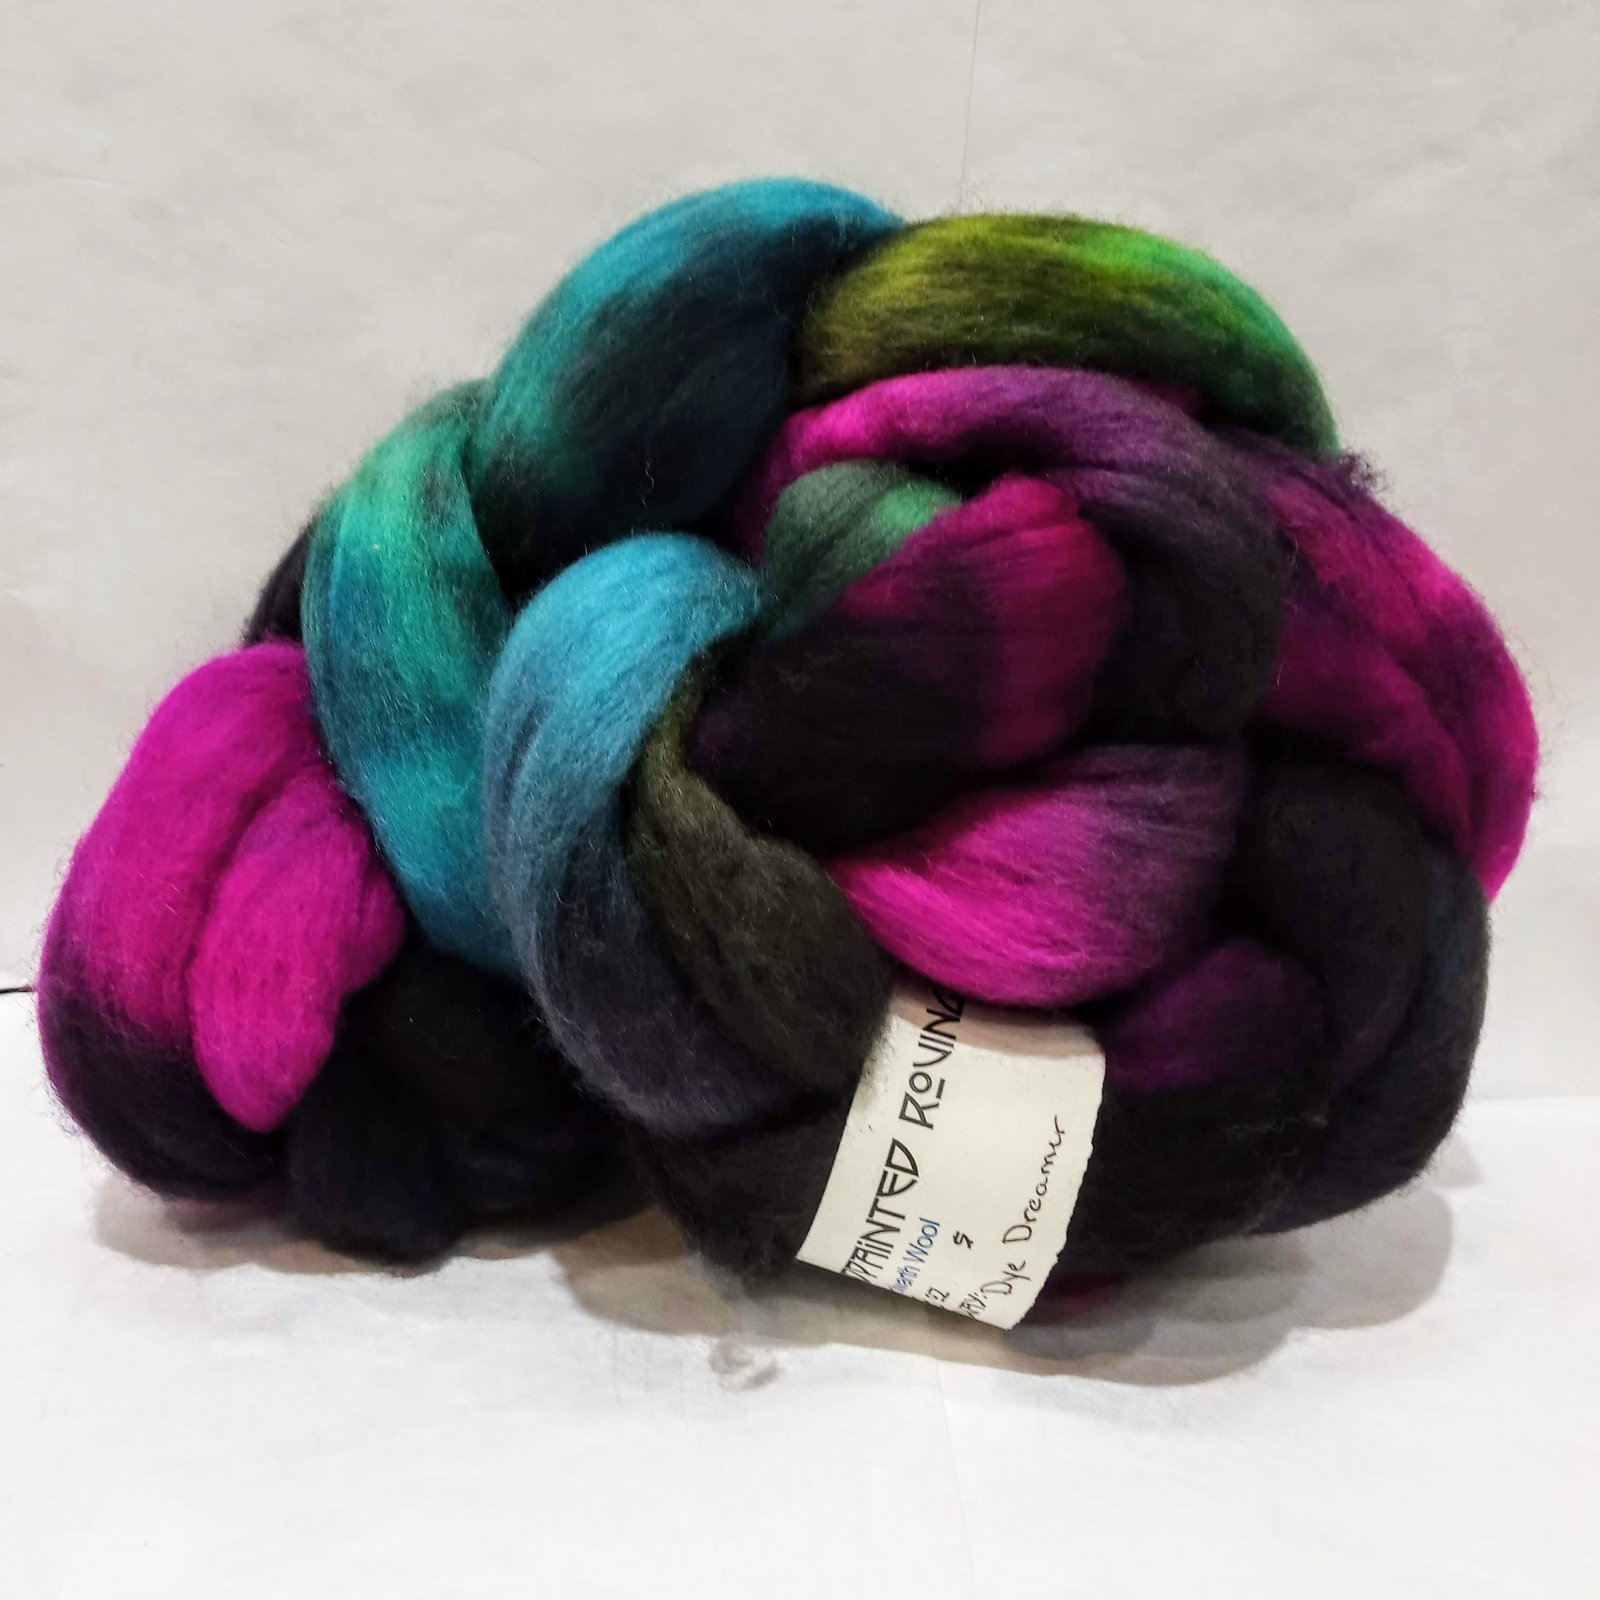 Blue Moon Fiber Arts Polwarth Roving